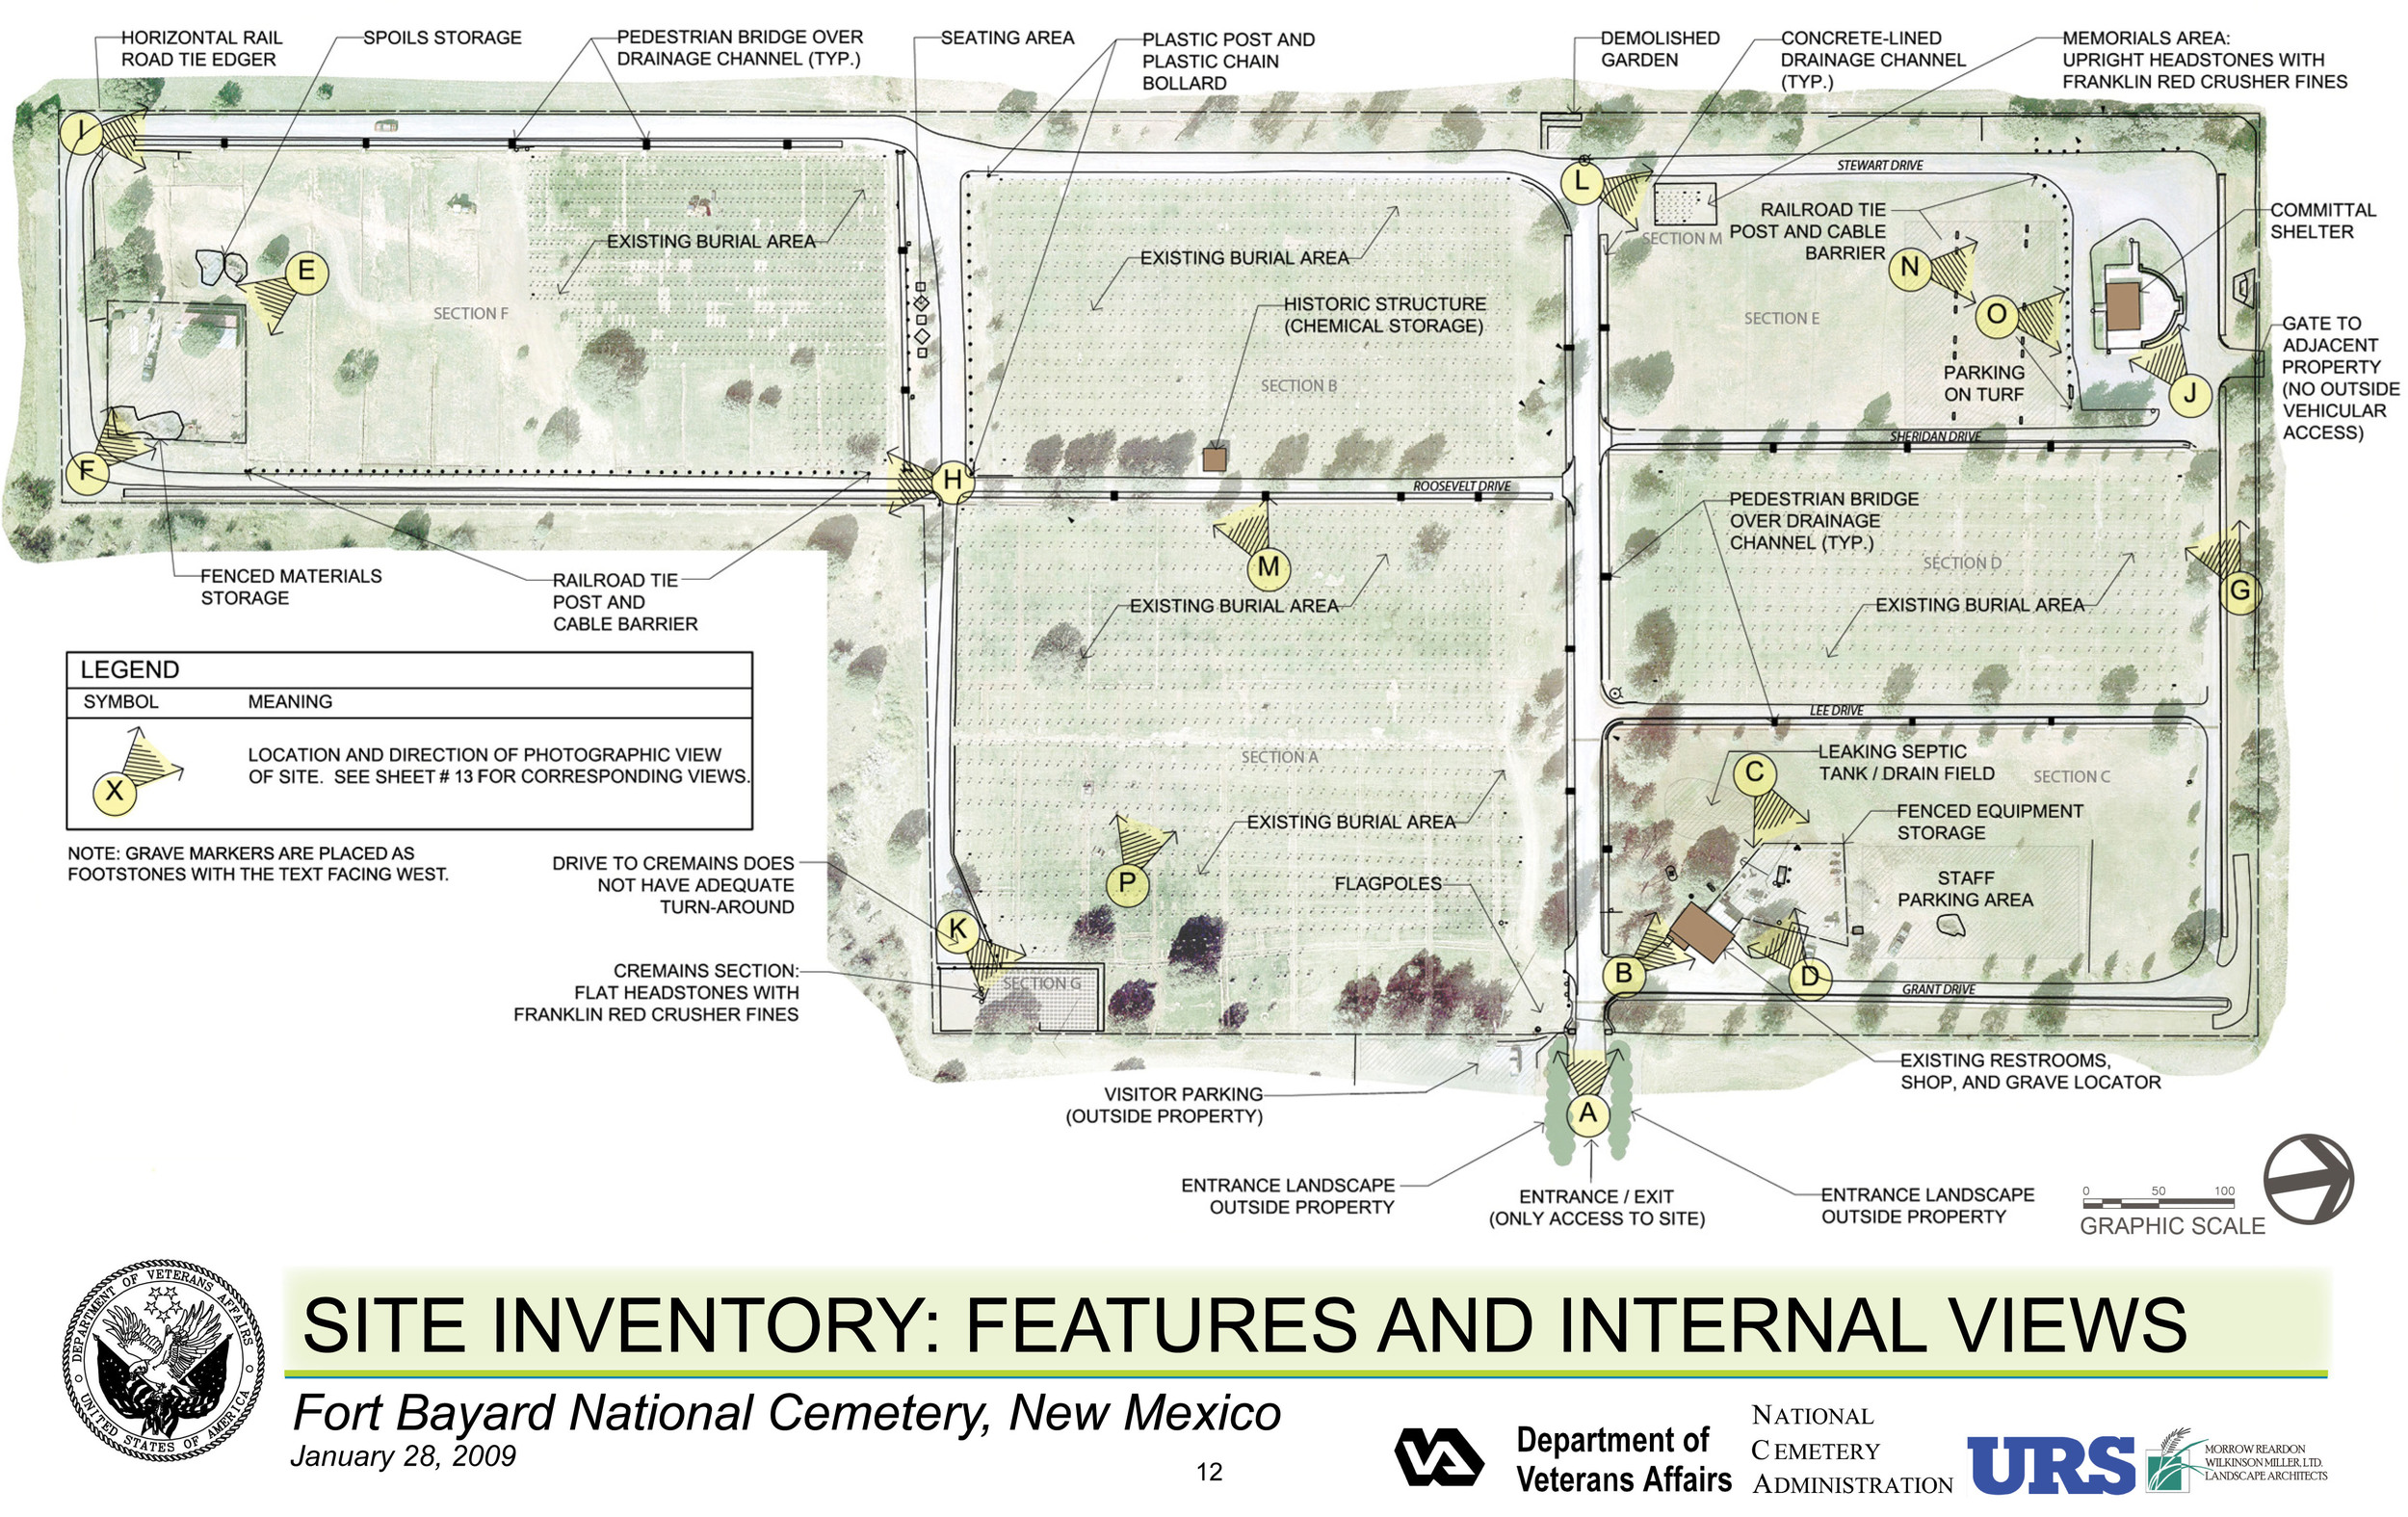 Fort Bayard National Cemetery - site inventory